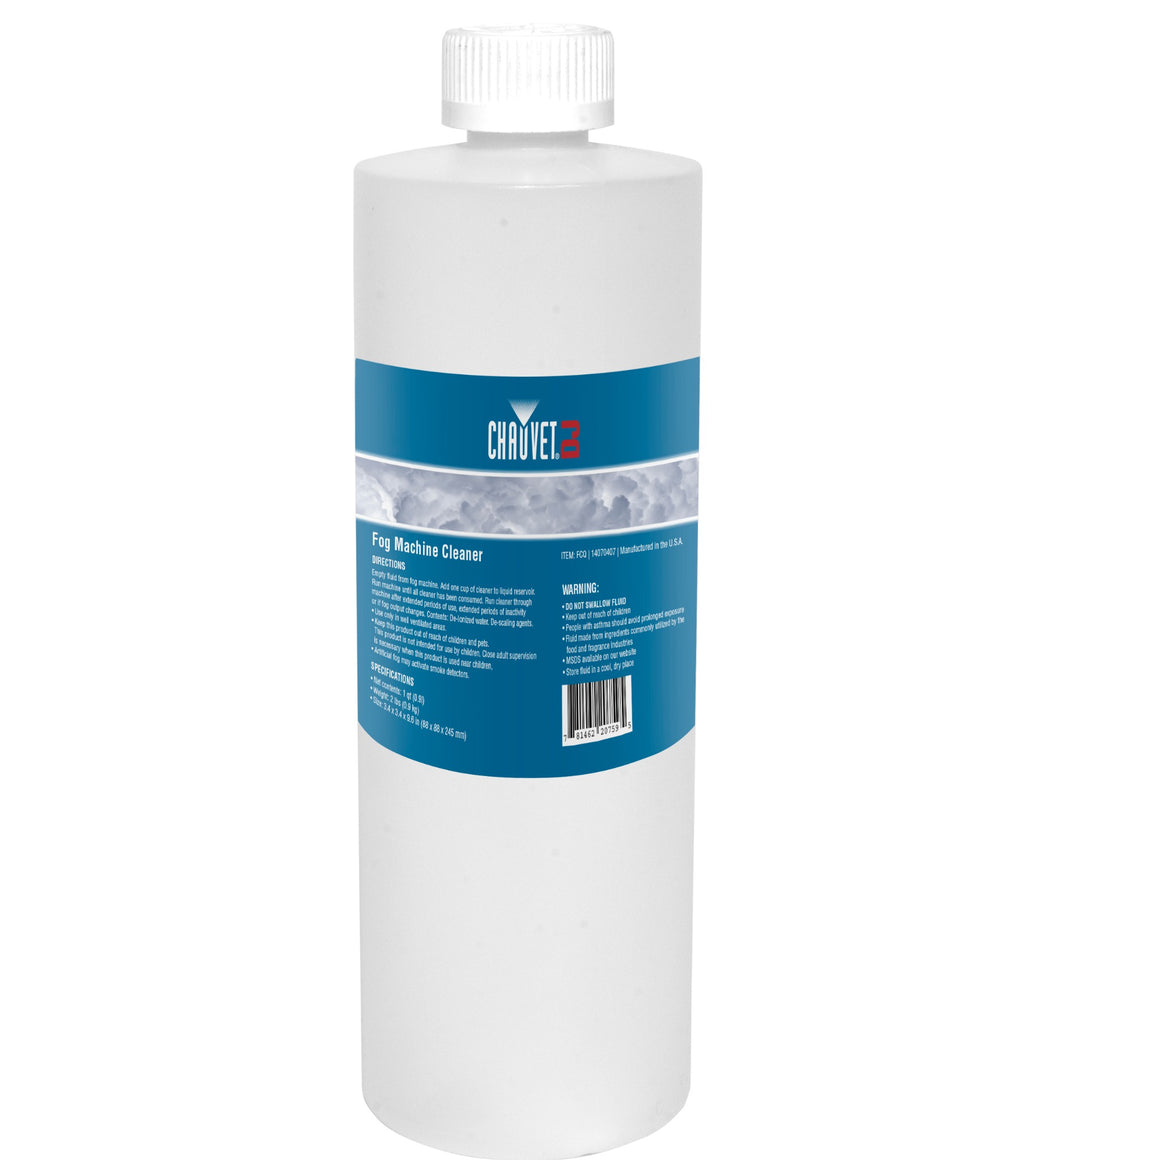 Chauvet FCQ Fog Machine Cleaner Fluid - 1 Quart